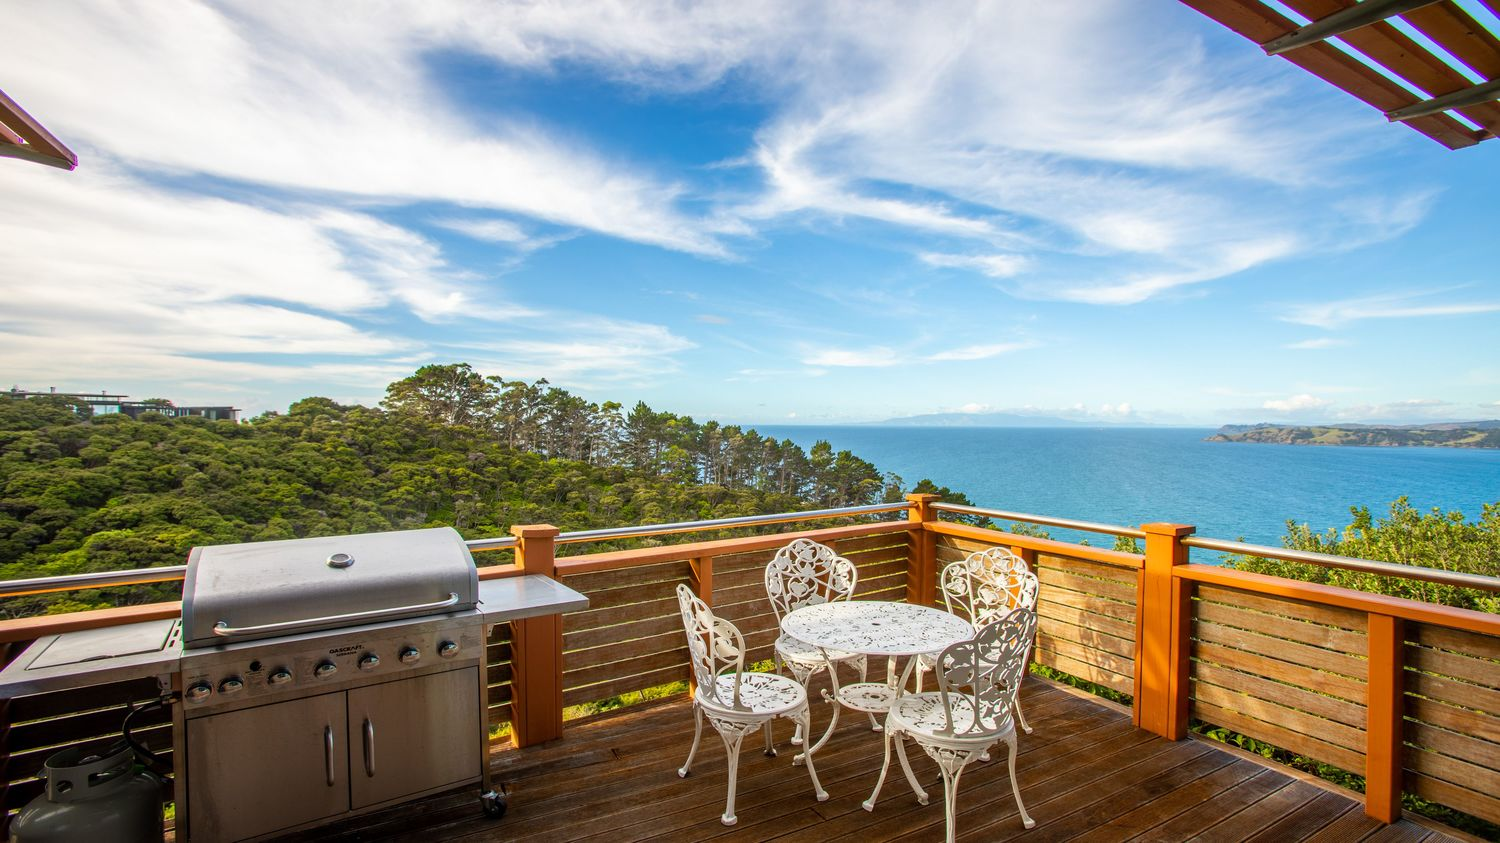 11._Seaview_from_verandah_with_table_setting_view_and_bbq_1_1500x843.jpeg